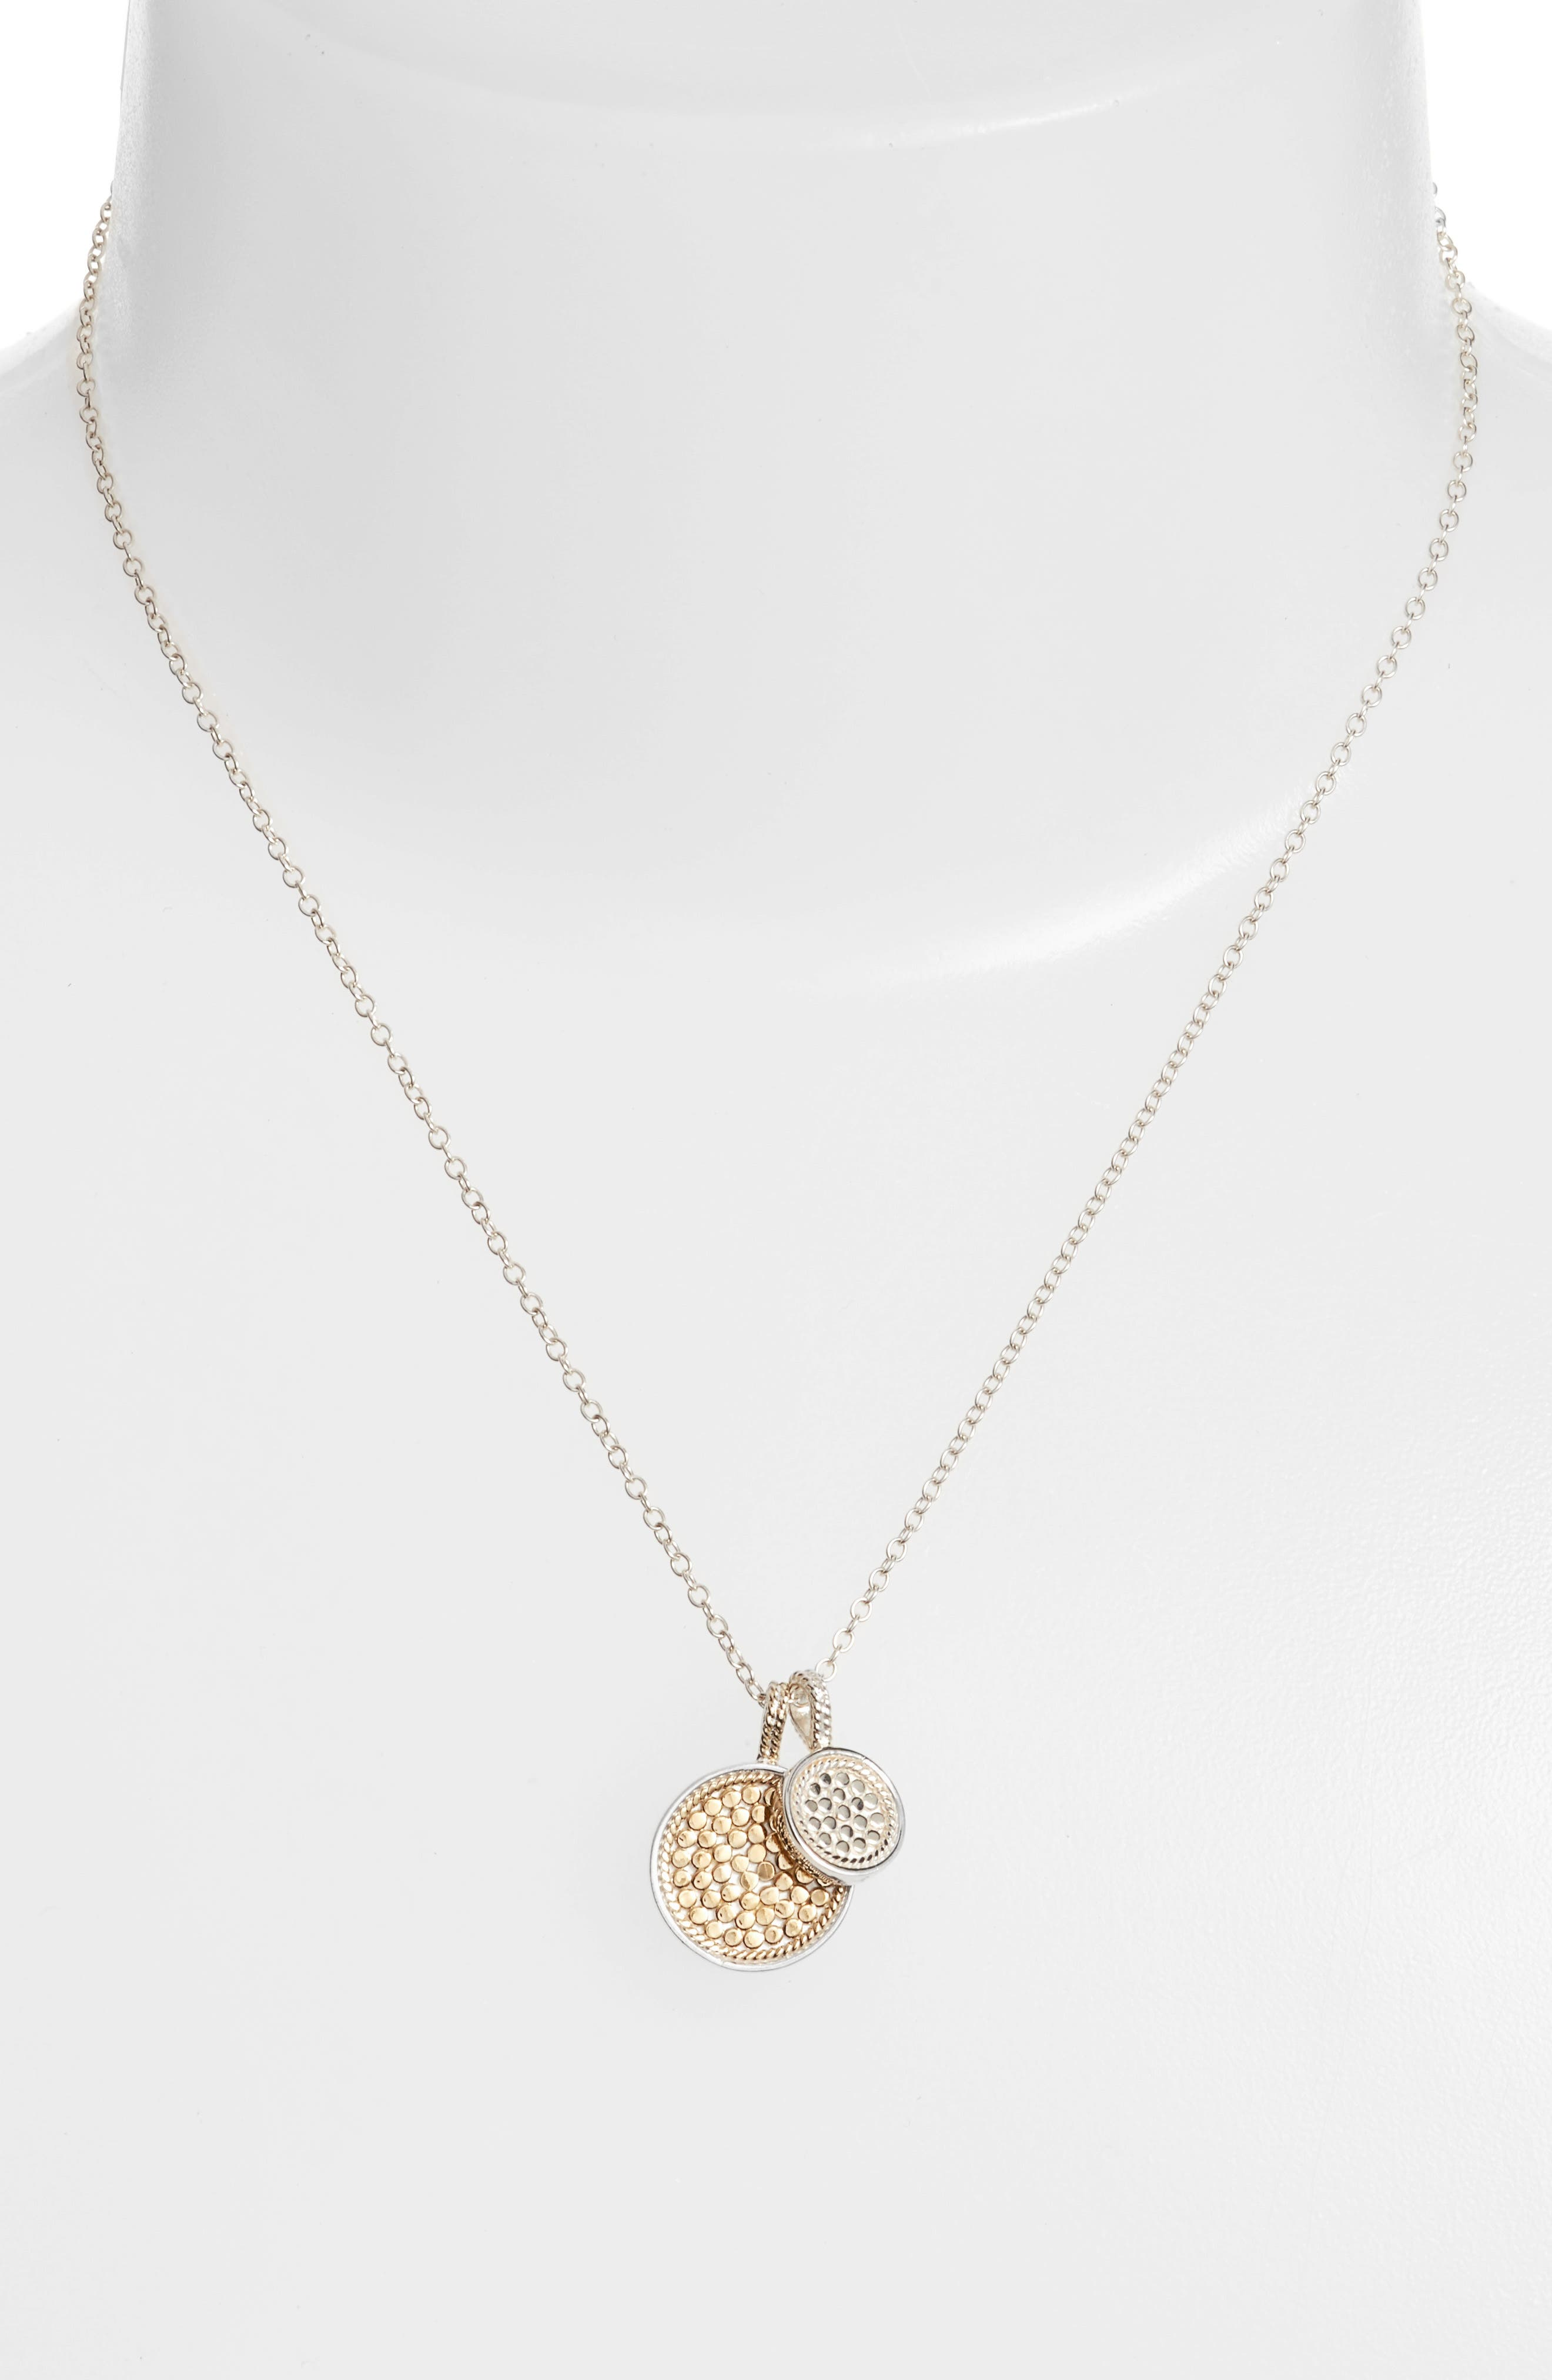 Alternate Image 1 Selected - Anna Beck Reversible Disc Pendant Necklace